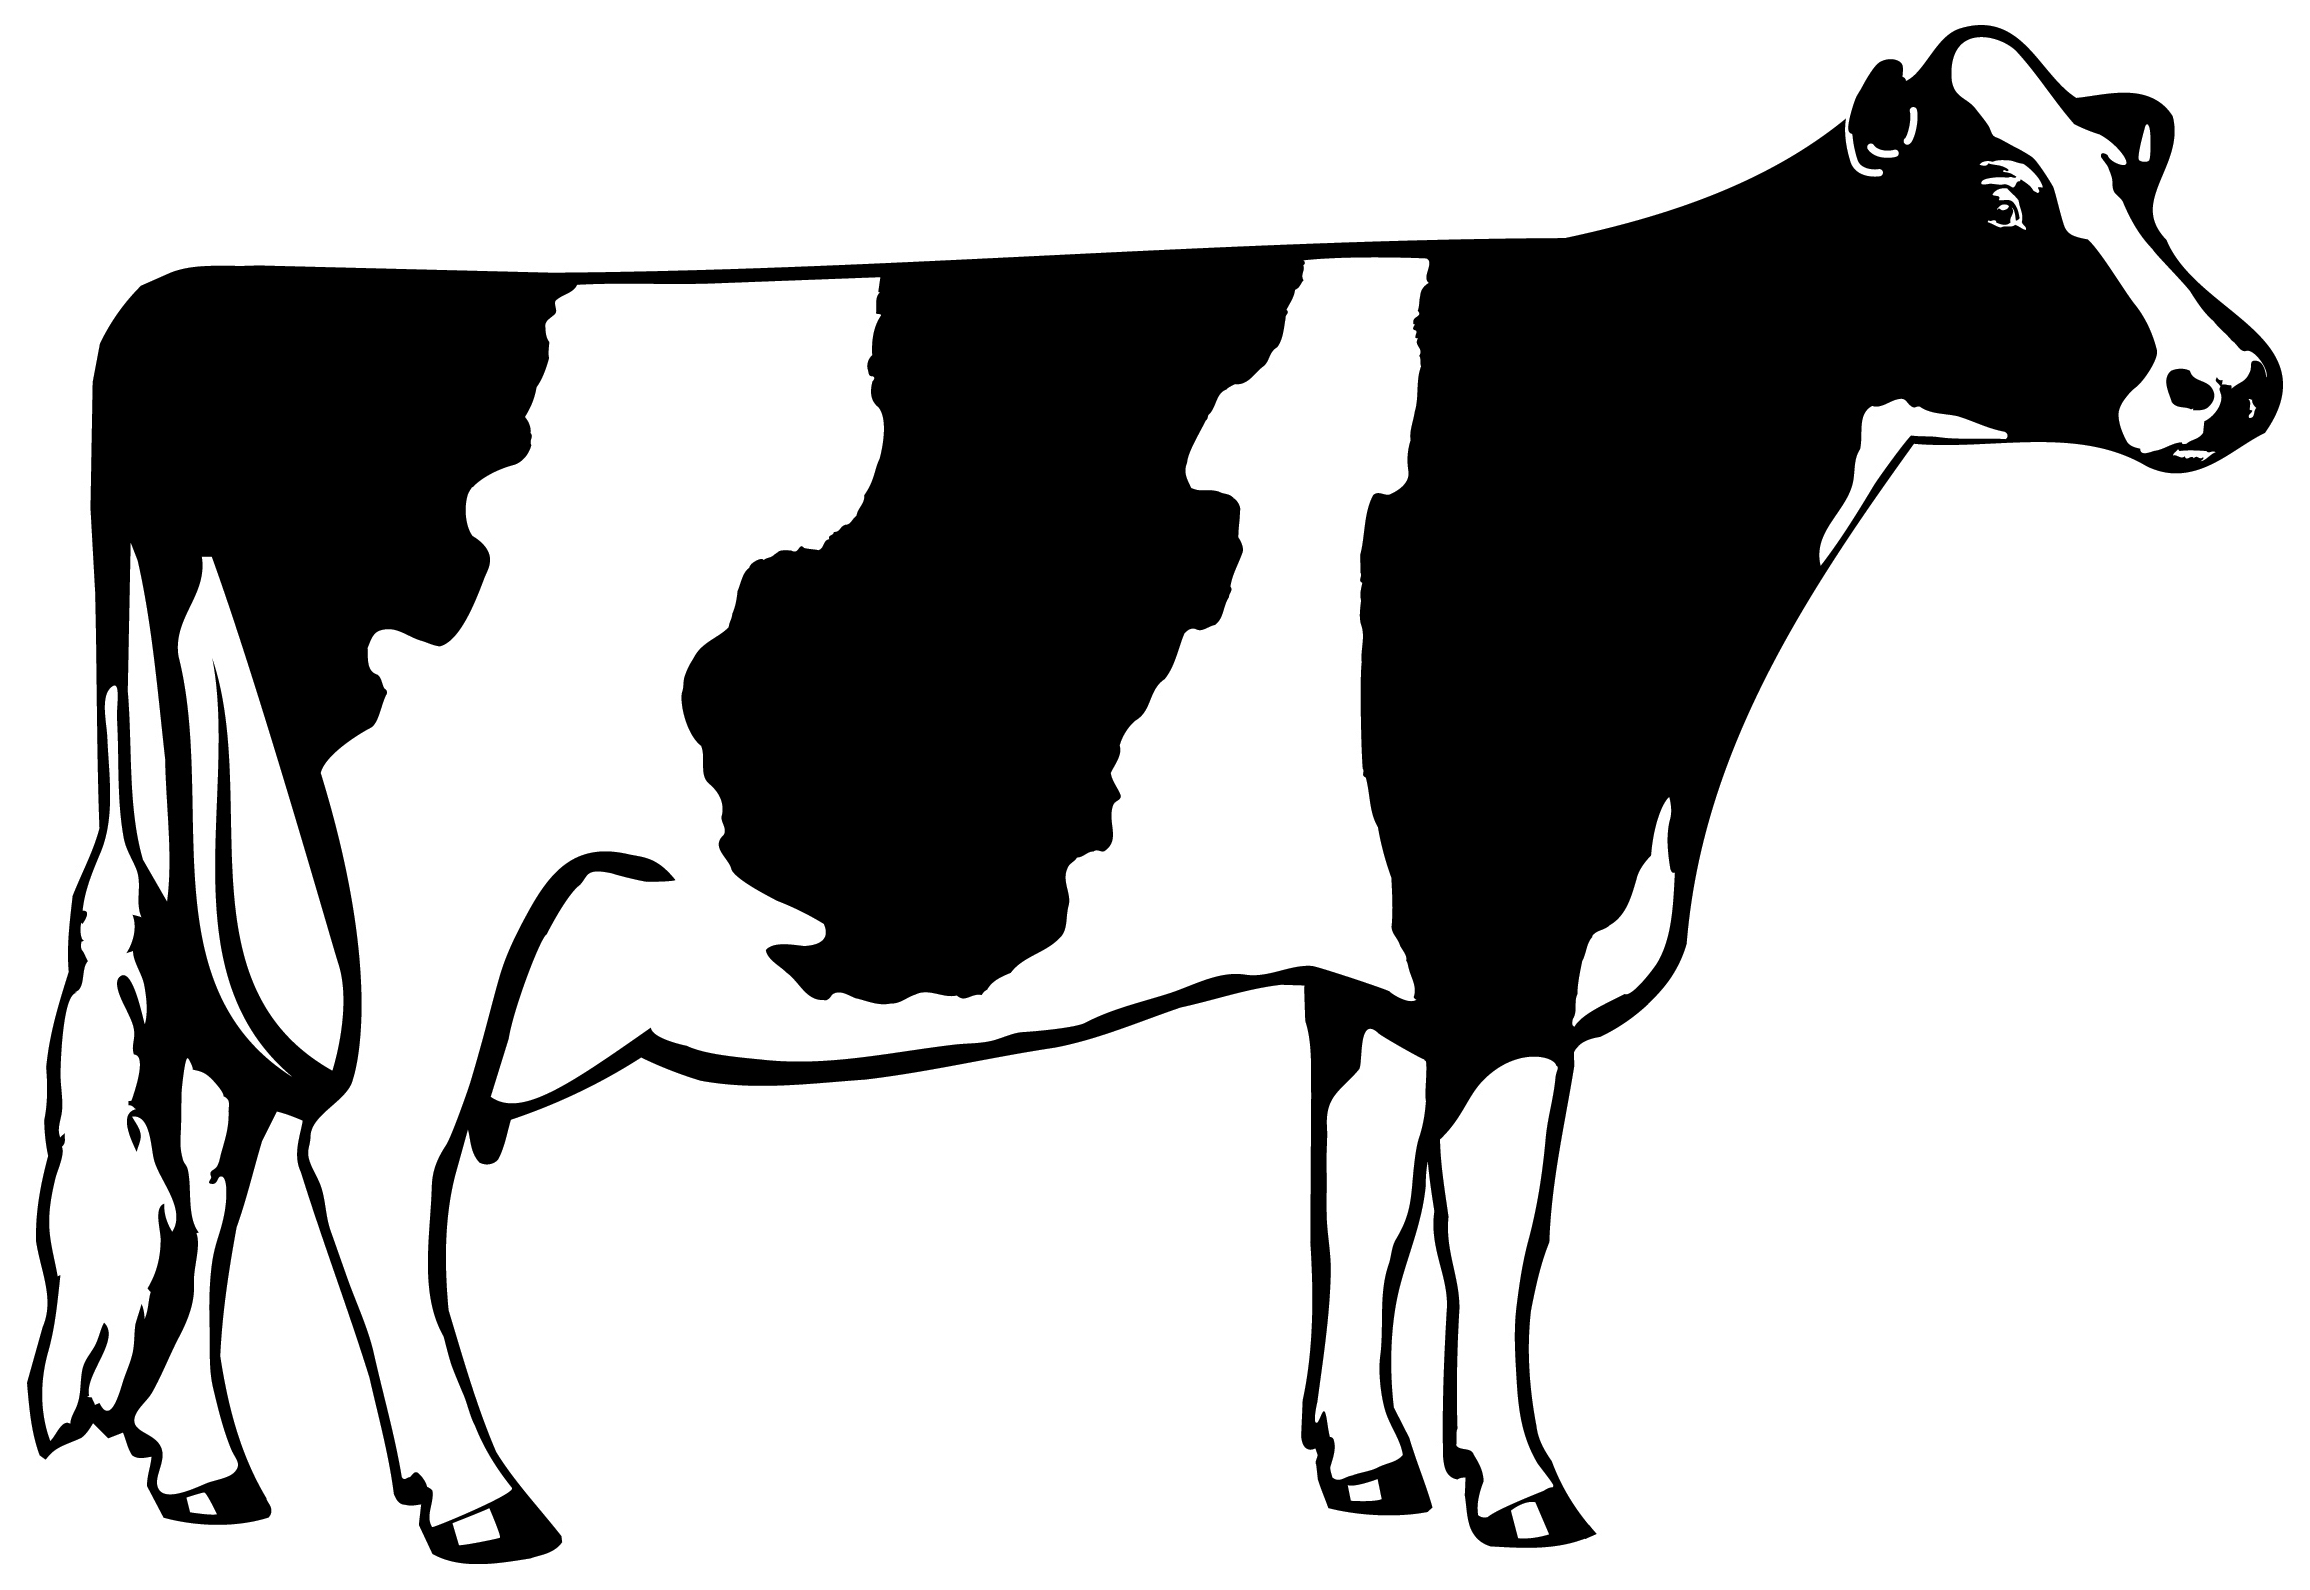 Cows at getdrawings com. Cow clip art silhouette graphic library stock